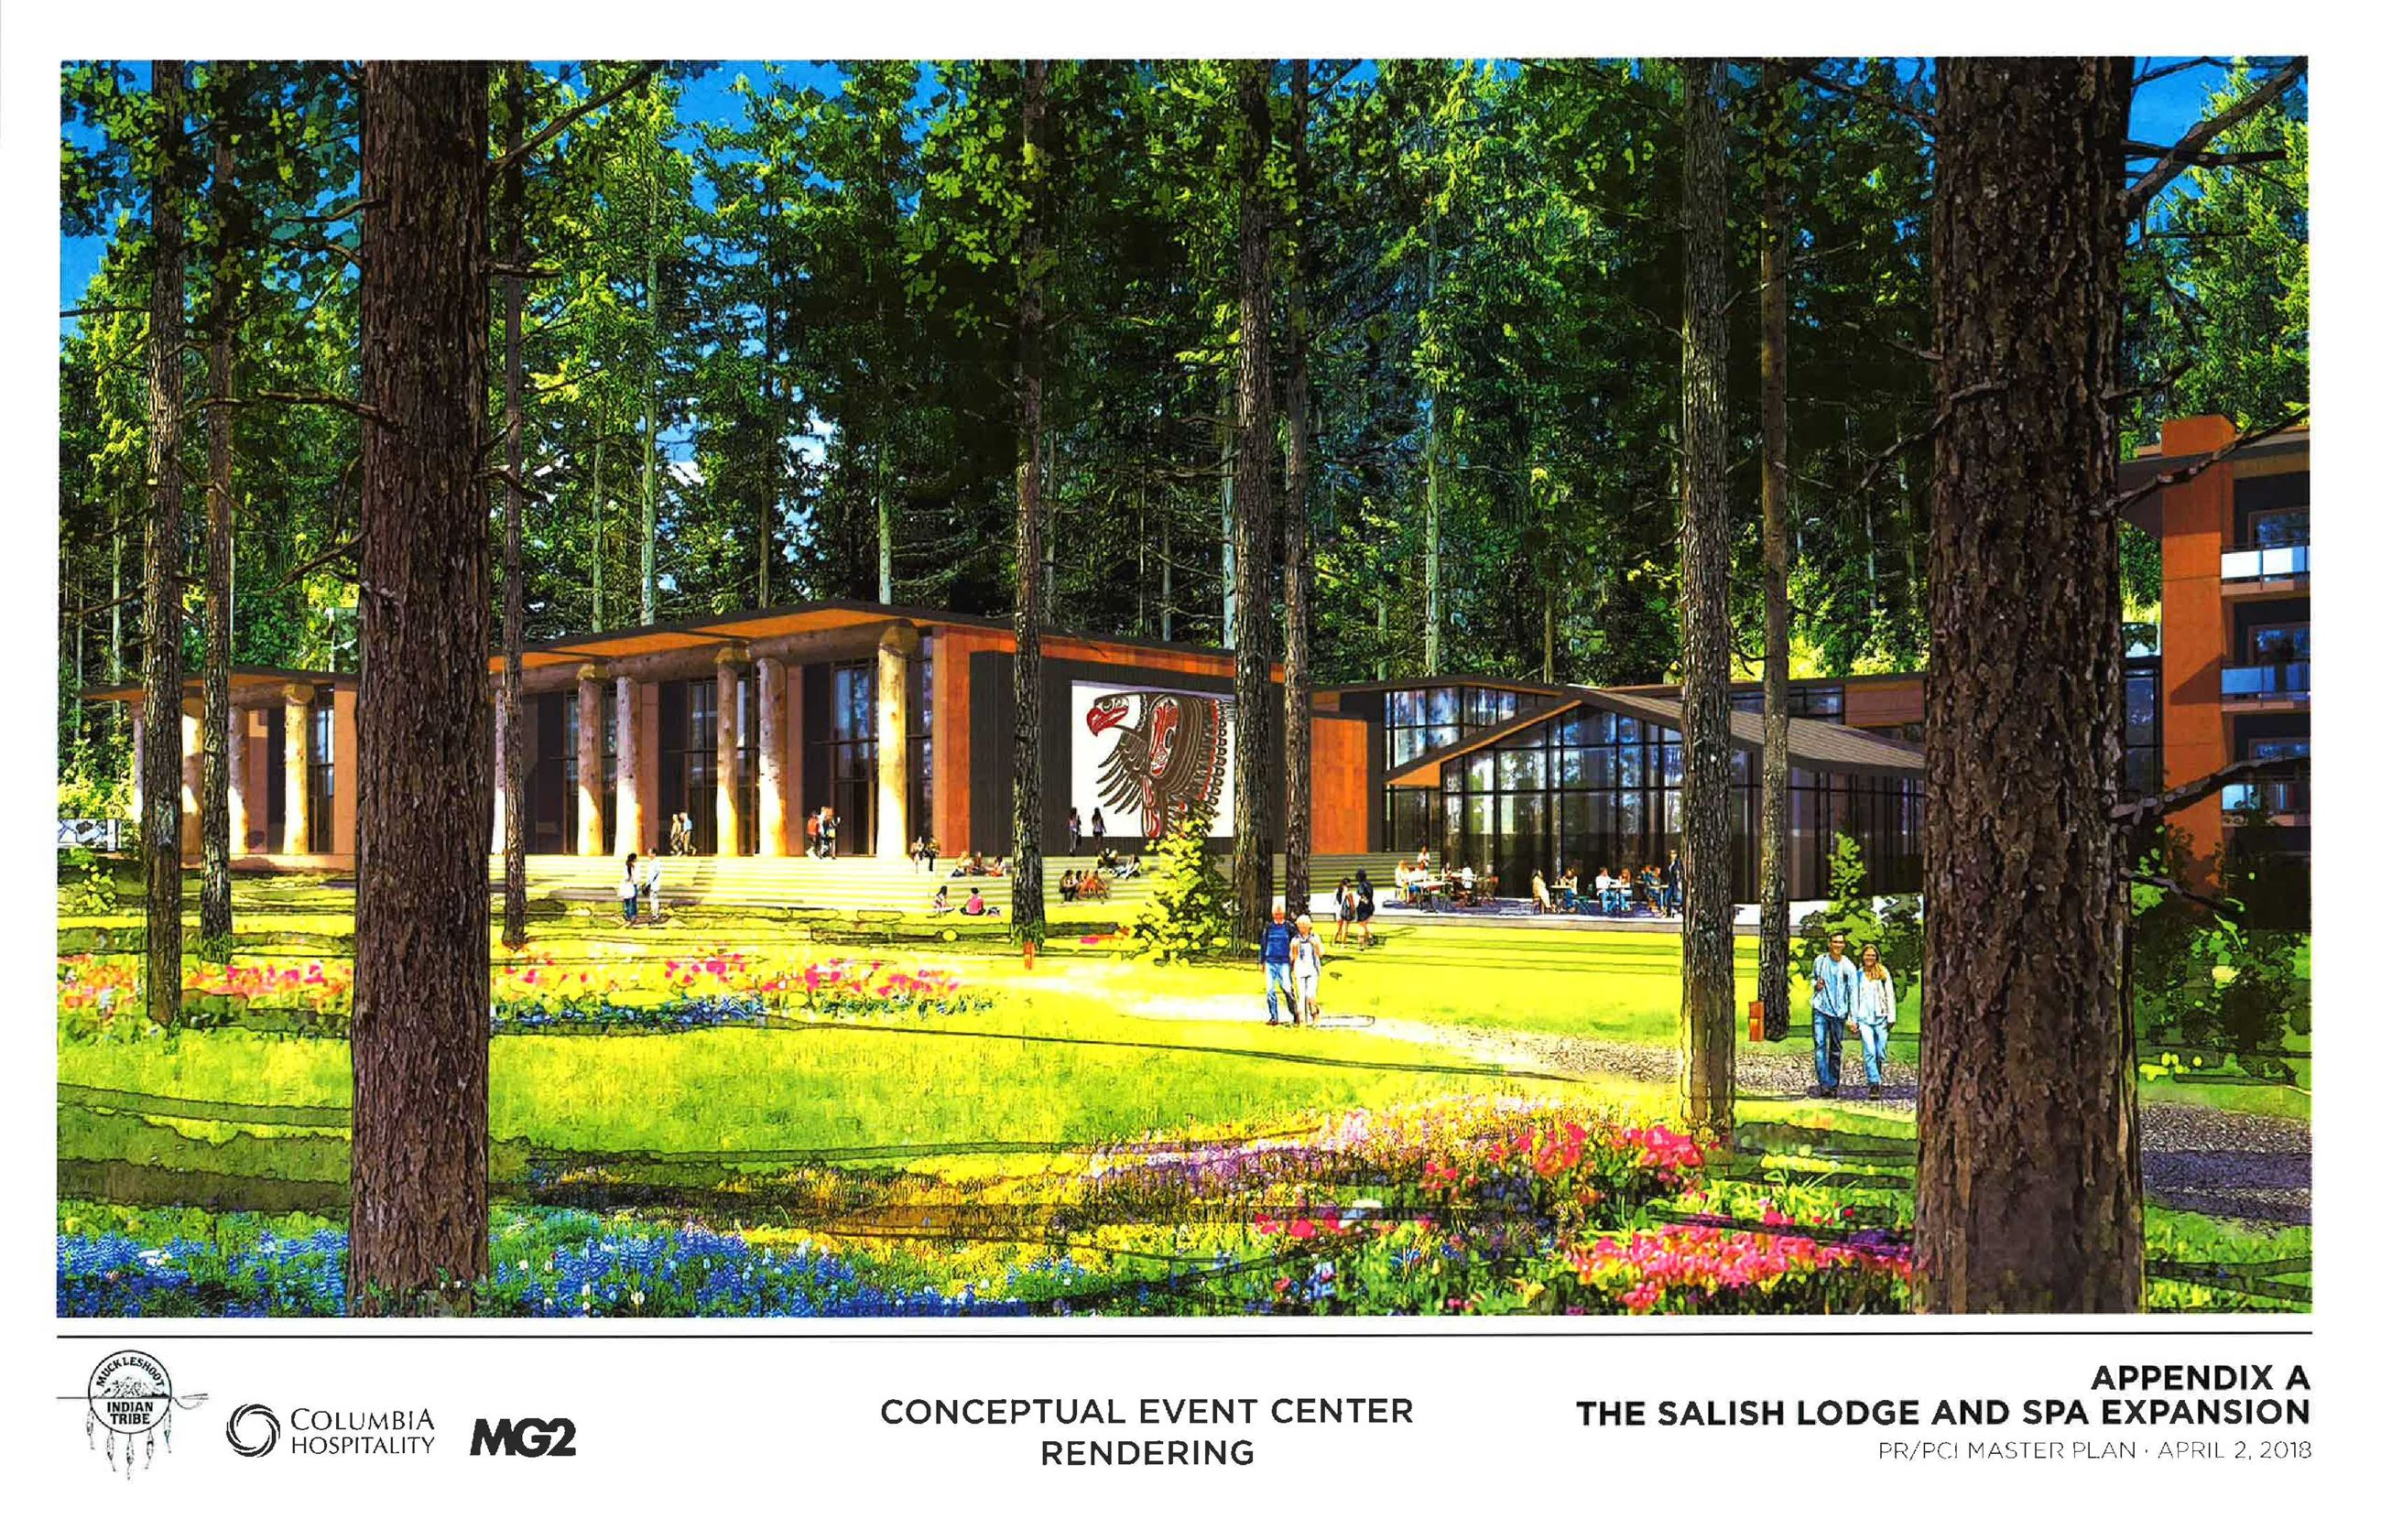 This is a conceptual rendering of a new Salish Lodge & Spa Event Center.